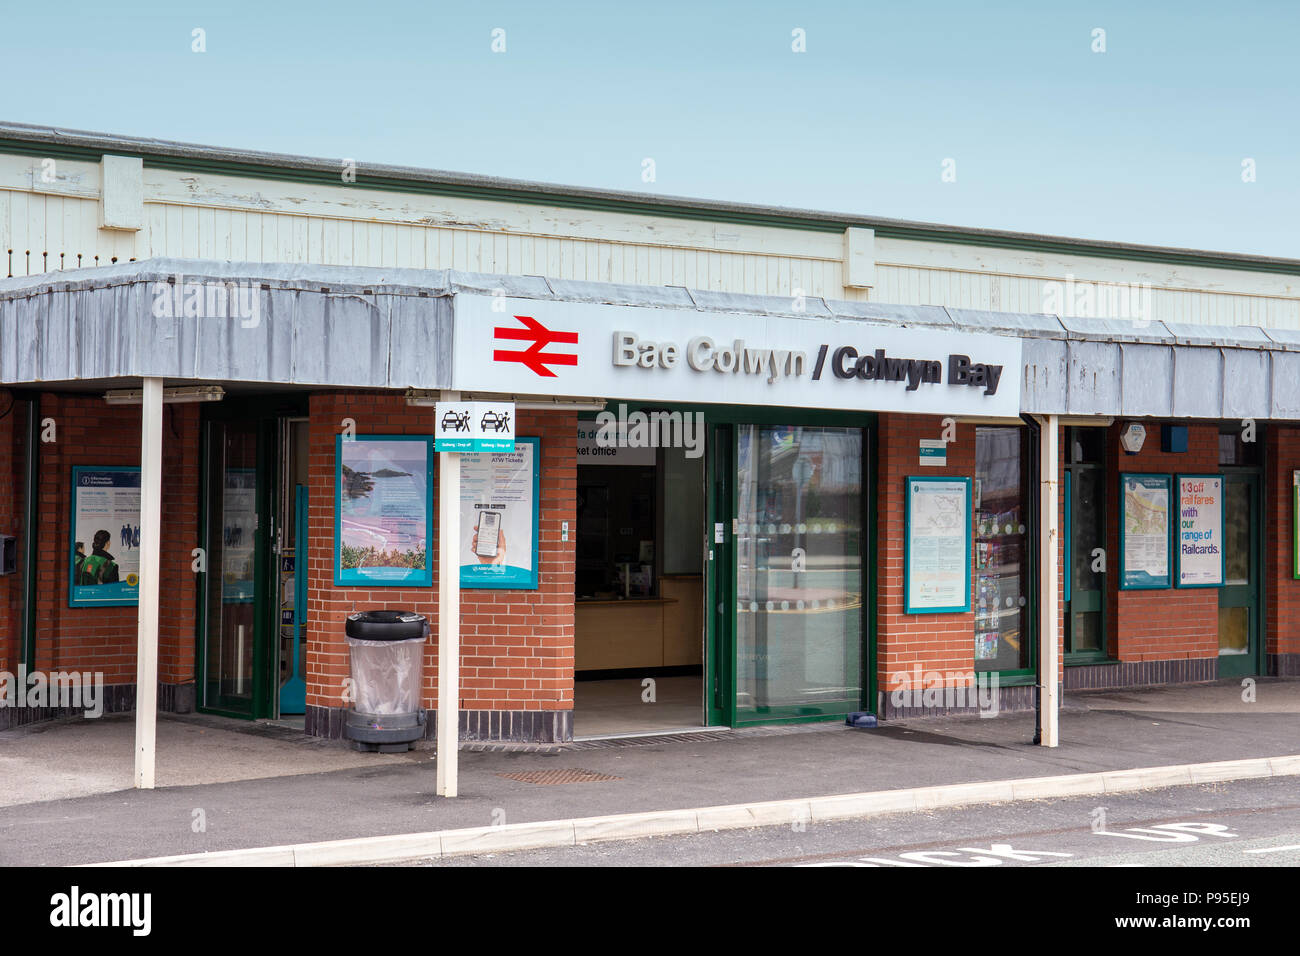 Colwyn Bay railway station North Wales UK - Stock Image